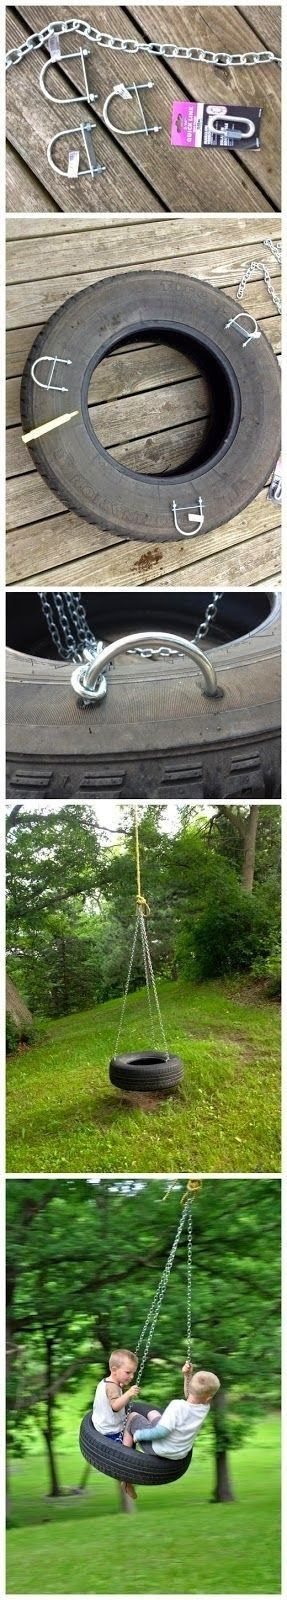 Tire swing pictorial